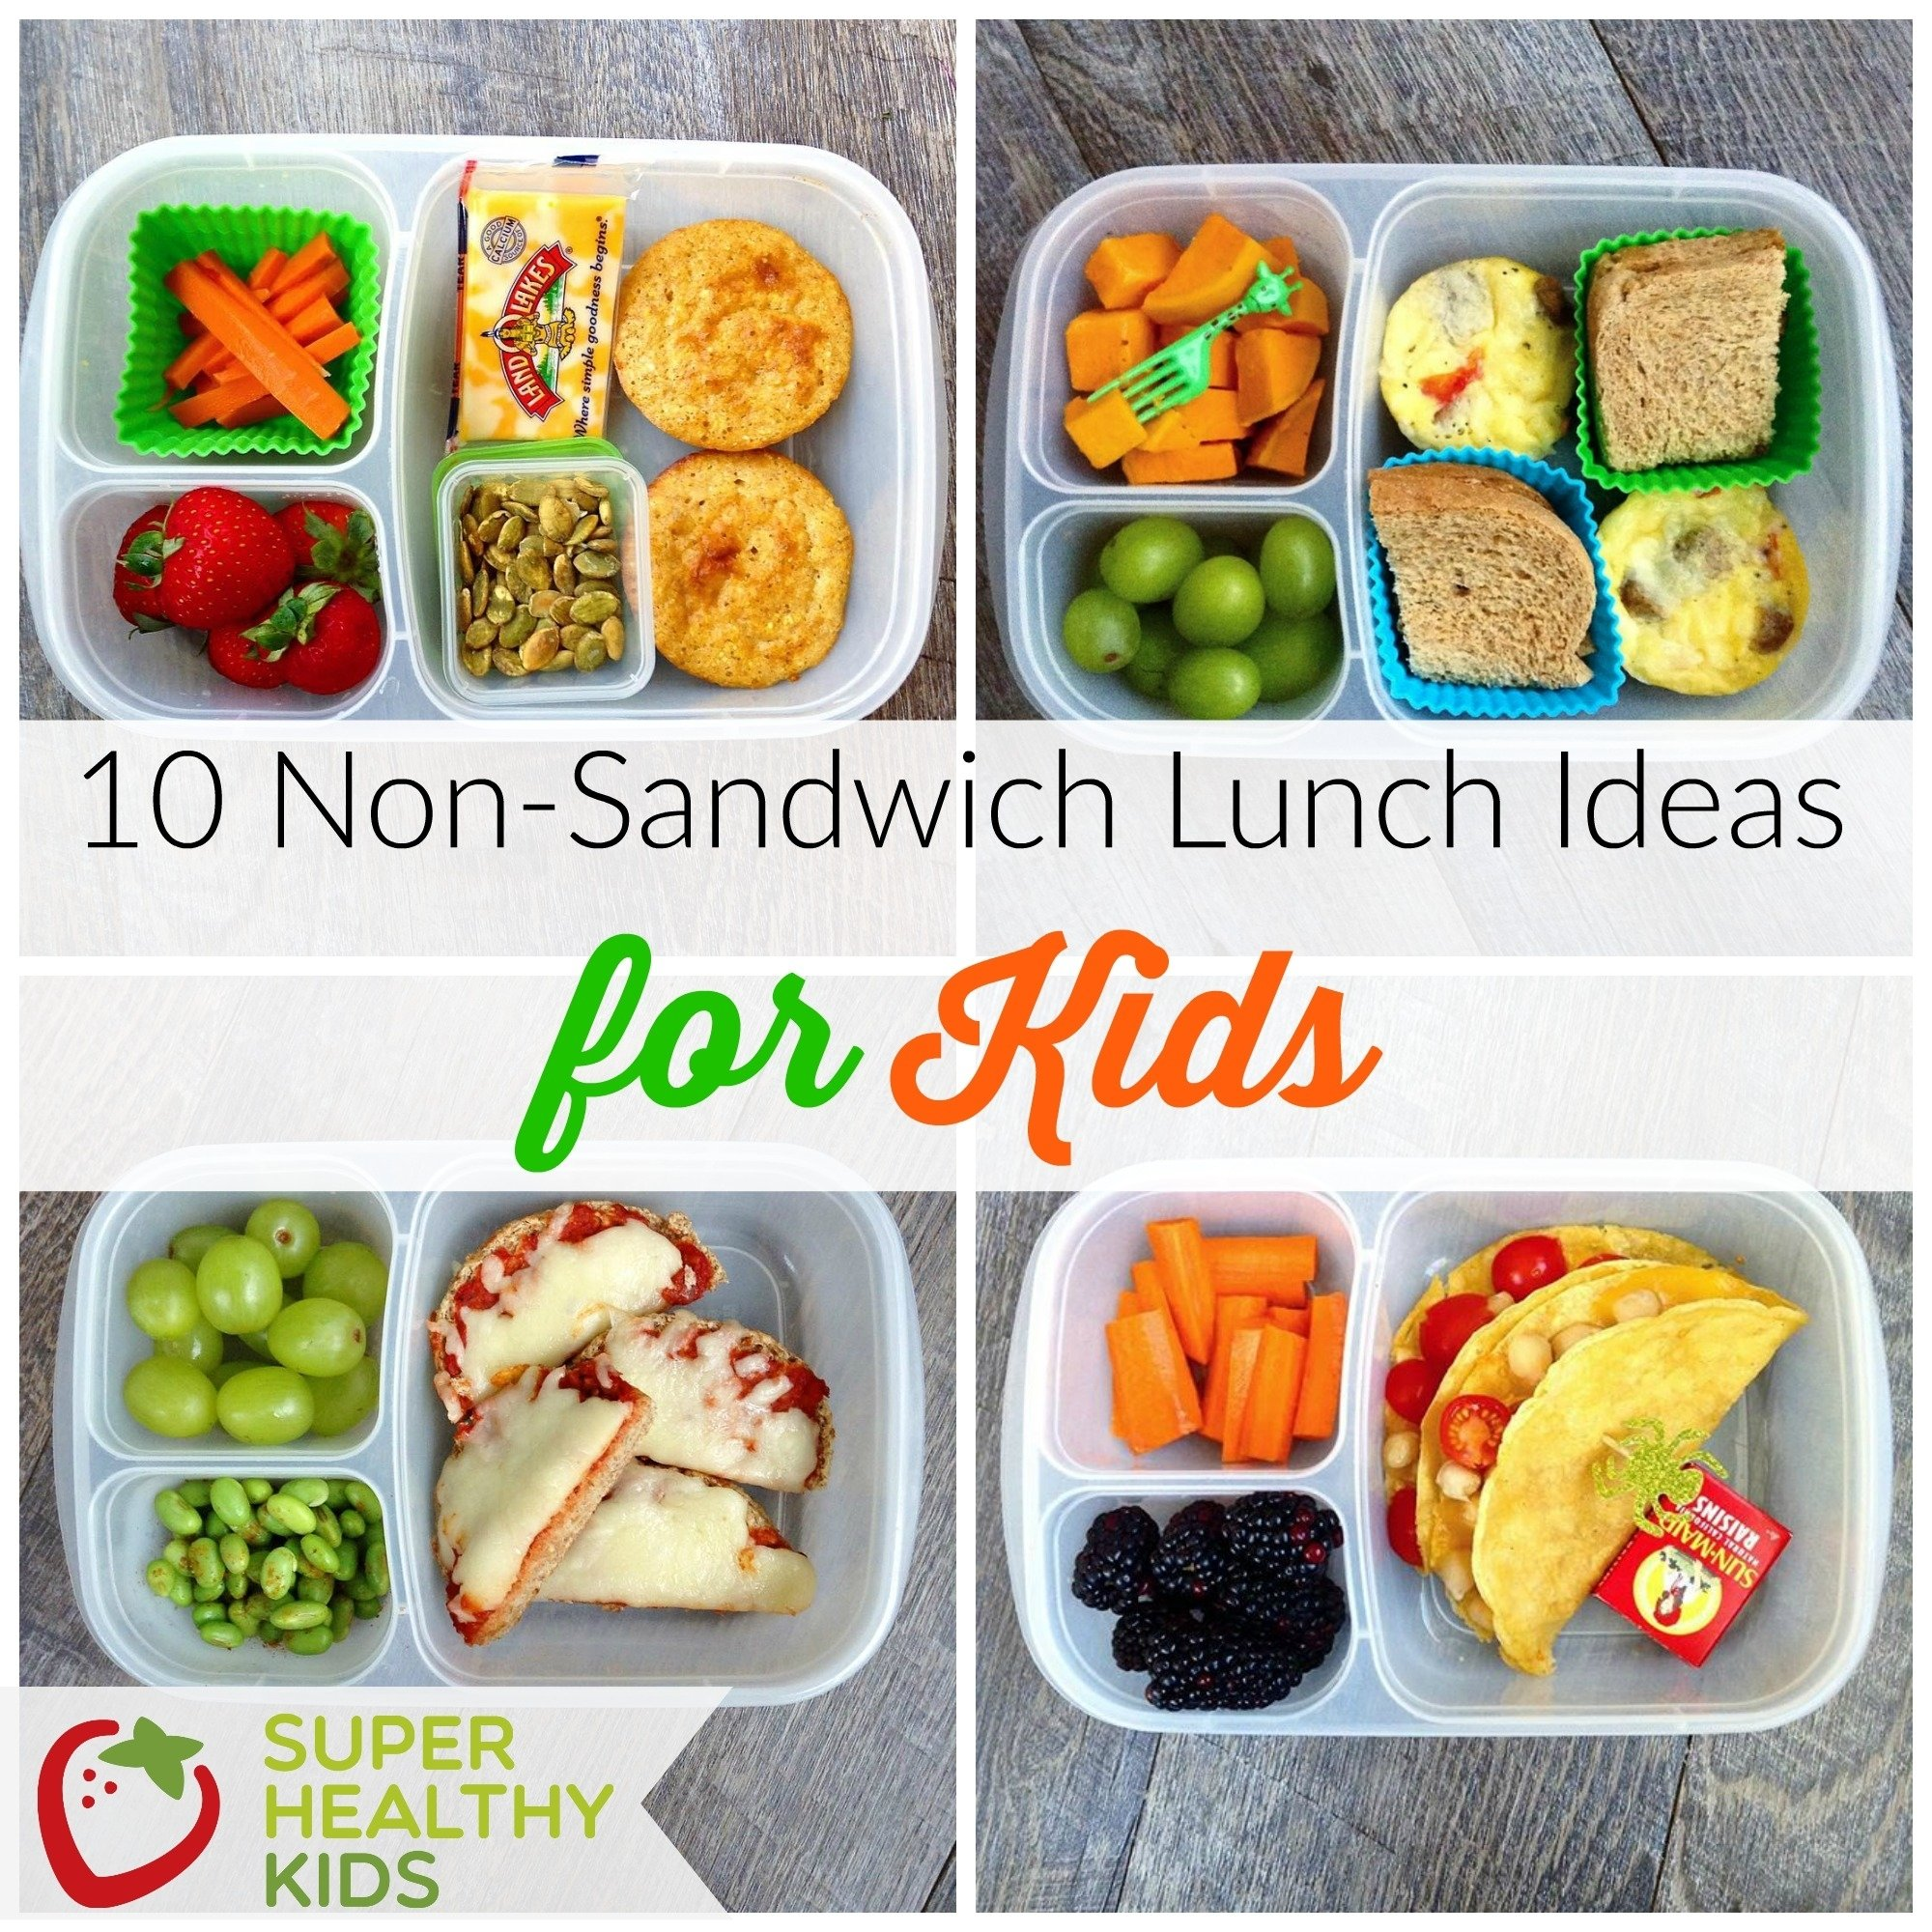 10 Amazing Healthy Lunch Ideas For Kids